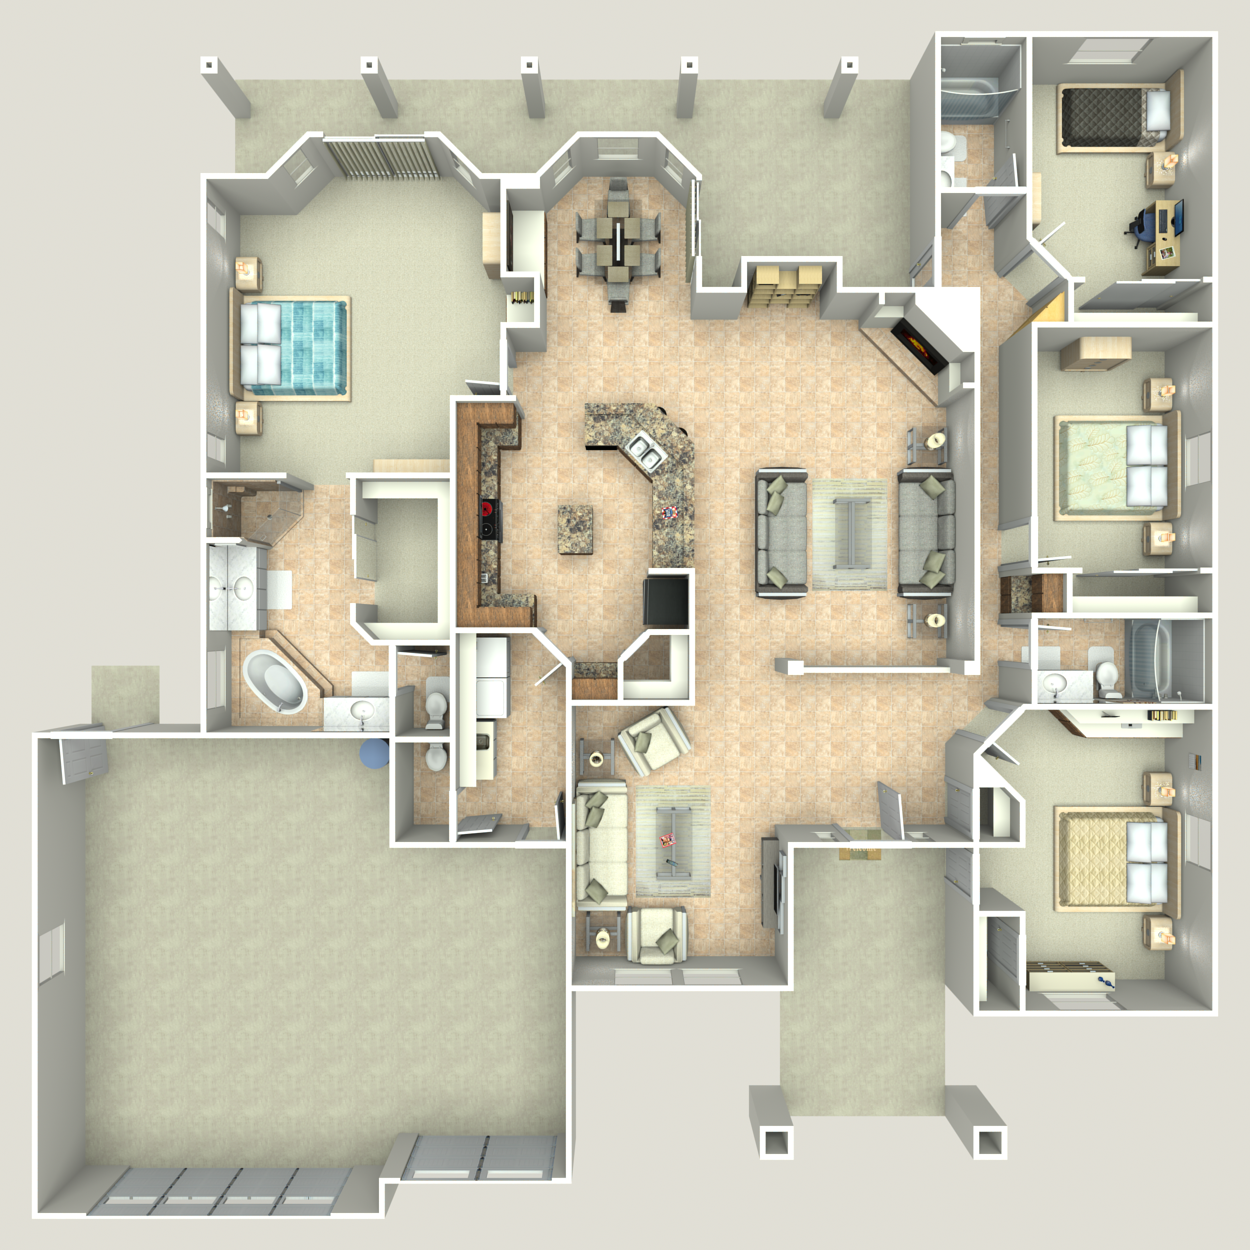 Floor plan image of The President